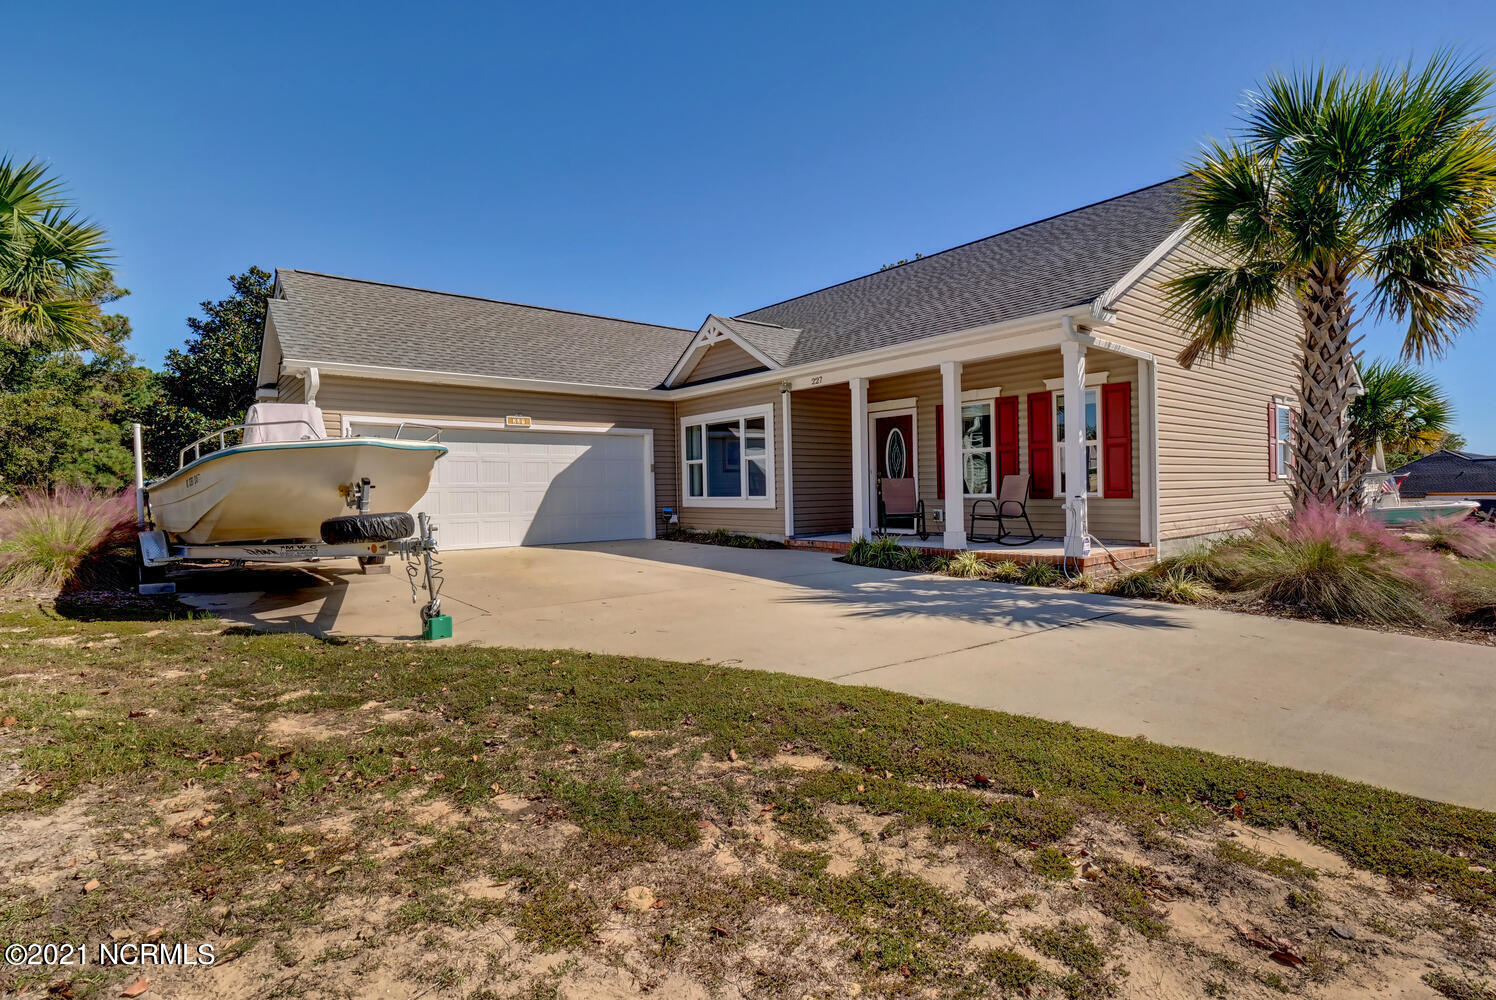 Beautiful, like-new ranch-style home on a spacious .53 acres in the private waterfront community of Topsail Watch in Hampstead with great waterway views from the screened porch. Built in 2017, this 3 bedroom, 2.5 bathroom, 1,889 square-foot home boasts premium finishes in every space including 9' ceilings, granite counters in all the bathrooms, hardwood floors, crown molding, wainscoting, a formal dining room, and plenty of storage options. The tiled gas fireplace and vaulted ceilings enhance the bright and airy open floor layout. Your premier kitchen highlights gorgeous granite countertops, decorative quarry tile floors, stainless steel appliances, a sizable pantry, an island for additional seating, and a sunlit breakfast nook. A half bathroom is conveniently located off the casual dining area. A laundry room with built-in shelving is off the kitchen near the pantry and garage entrance. Enjoy watching the sparkling Intracoastal Waterway from the privacy of your spacious screened porch or soak up the sun on your expansive back deck. Your impressive master suite features a tray ceiling, granite countertops, custom tiled walk-in shower, corner soaking tub, large walk-in closet, separate vanities, two convenient entrances, and private access to the screened-in porch. On the other side of the house are two spacious bedrooms and the second full bathroom with granite countertops. With .53 acres, you can enjoy yard games, cookouts, and more with friends and family or simply take in the peaceful Carolina seaside. Other features include a two-car garage, transfer switch for generator, and convenient walk-up stairs to the attic from the breakfast nook. A short stroll to launch your kayak in the Intracoastal Waterway for quick access to Topsail Island and all the surrounding islands and inlets. You'll be singing Sweet Carolina in this beautiful home in the quiet waterfront community of Topsail Watch. Call today to make it yours!